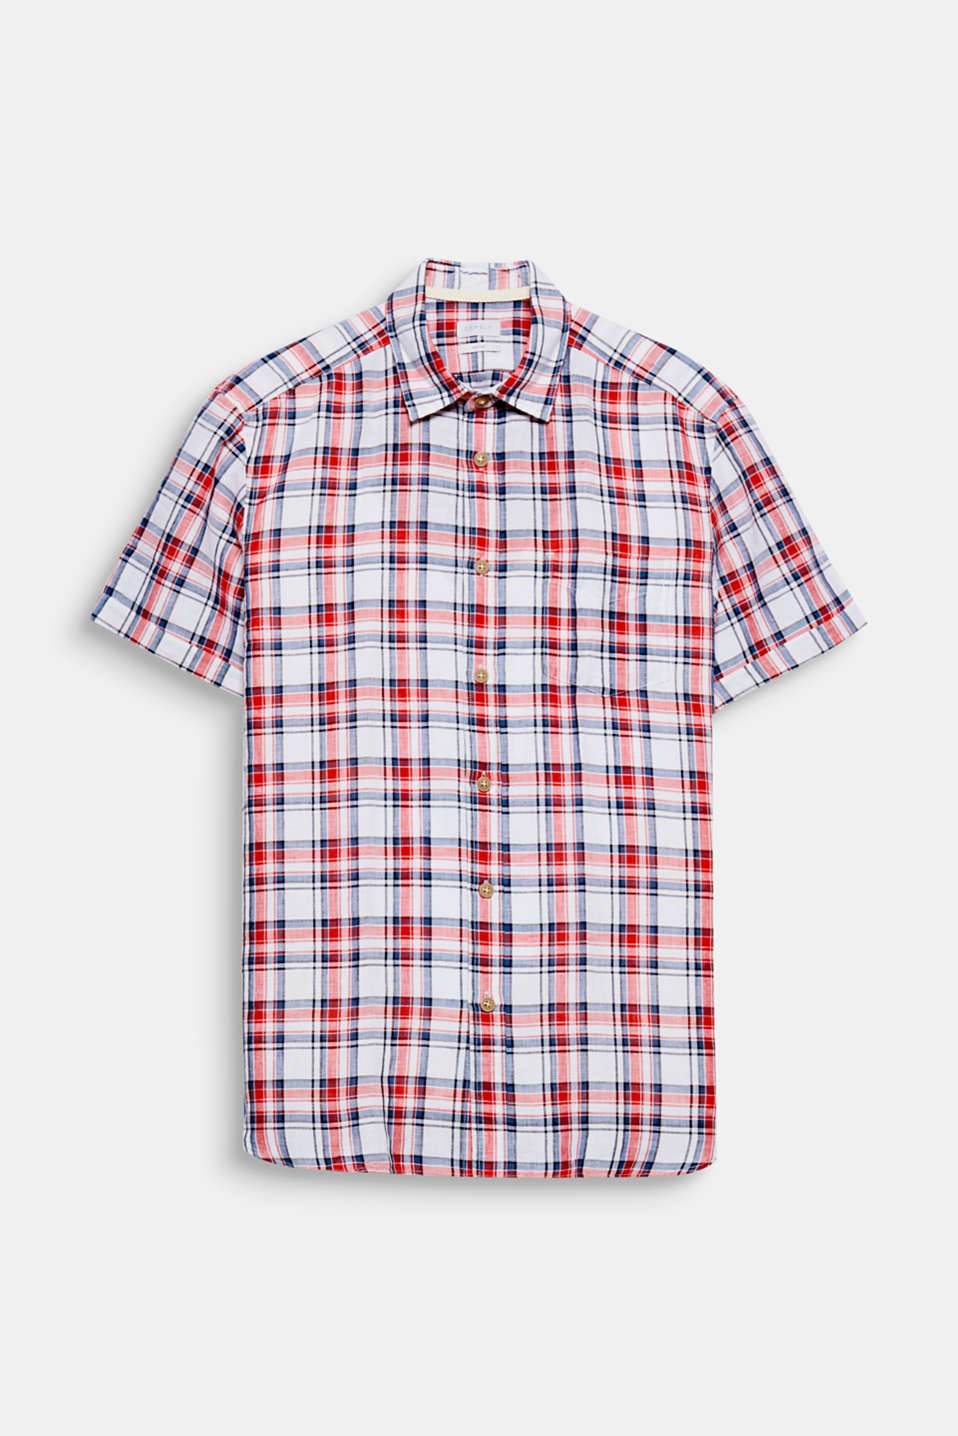 This checked short sleeve shirt is perfect for the summer thanks to its linen blend.